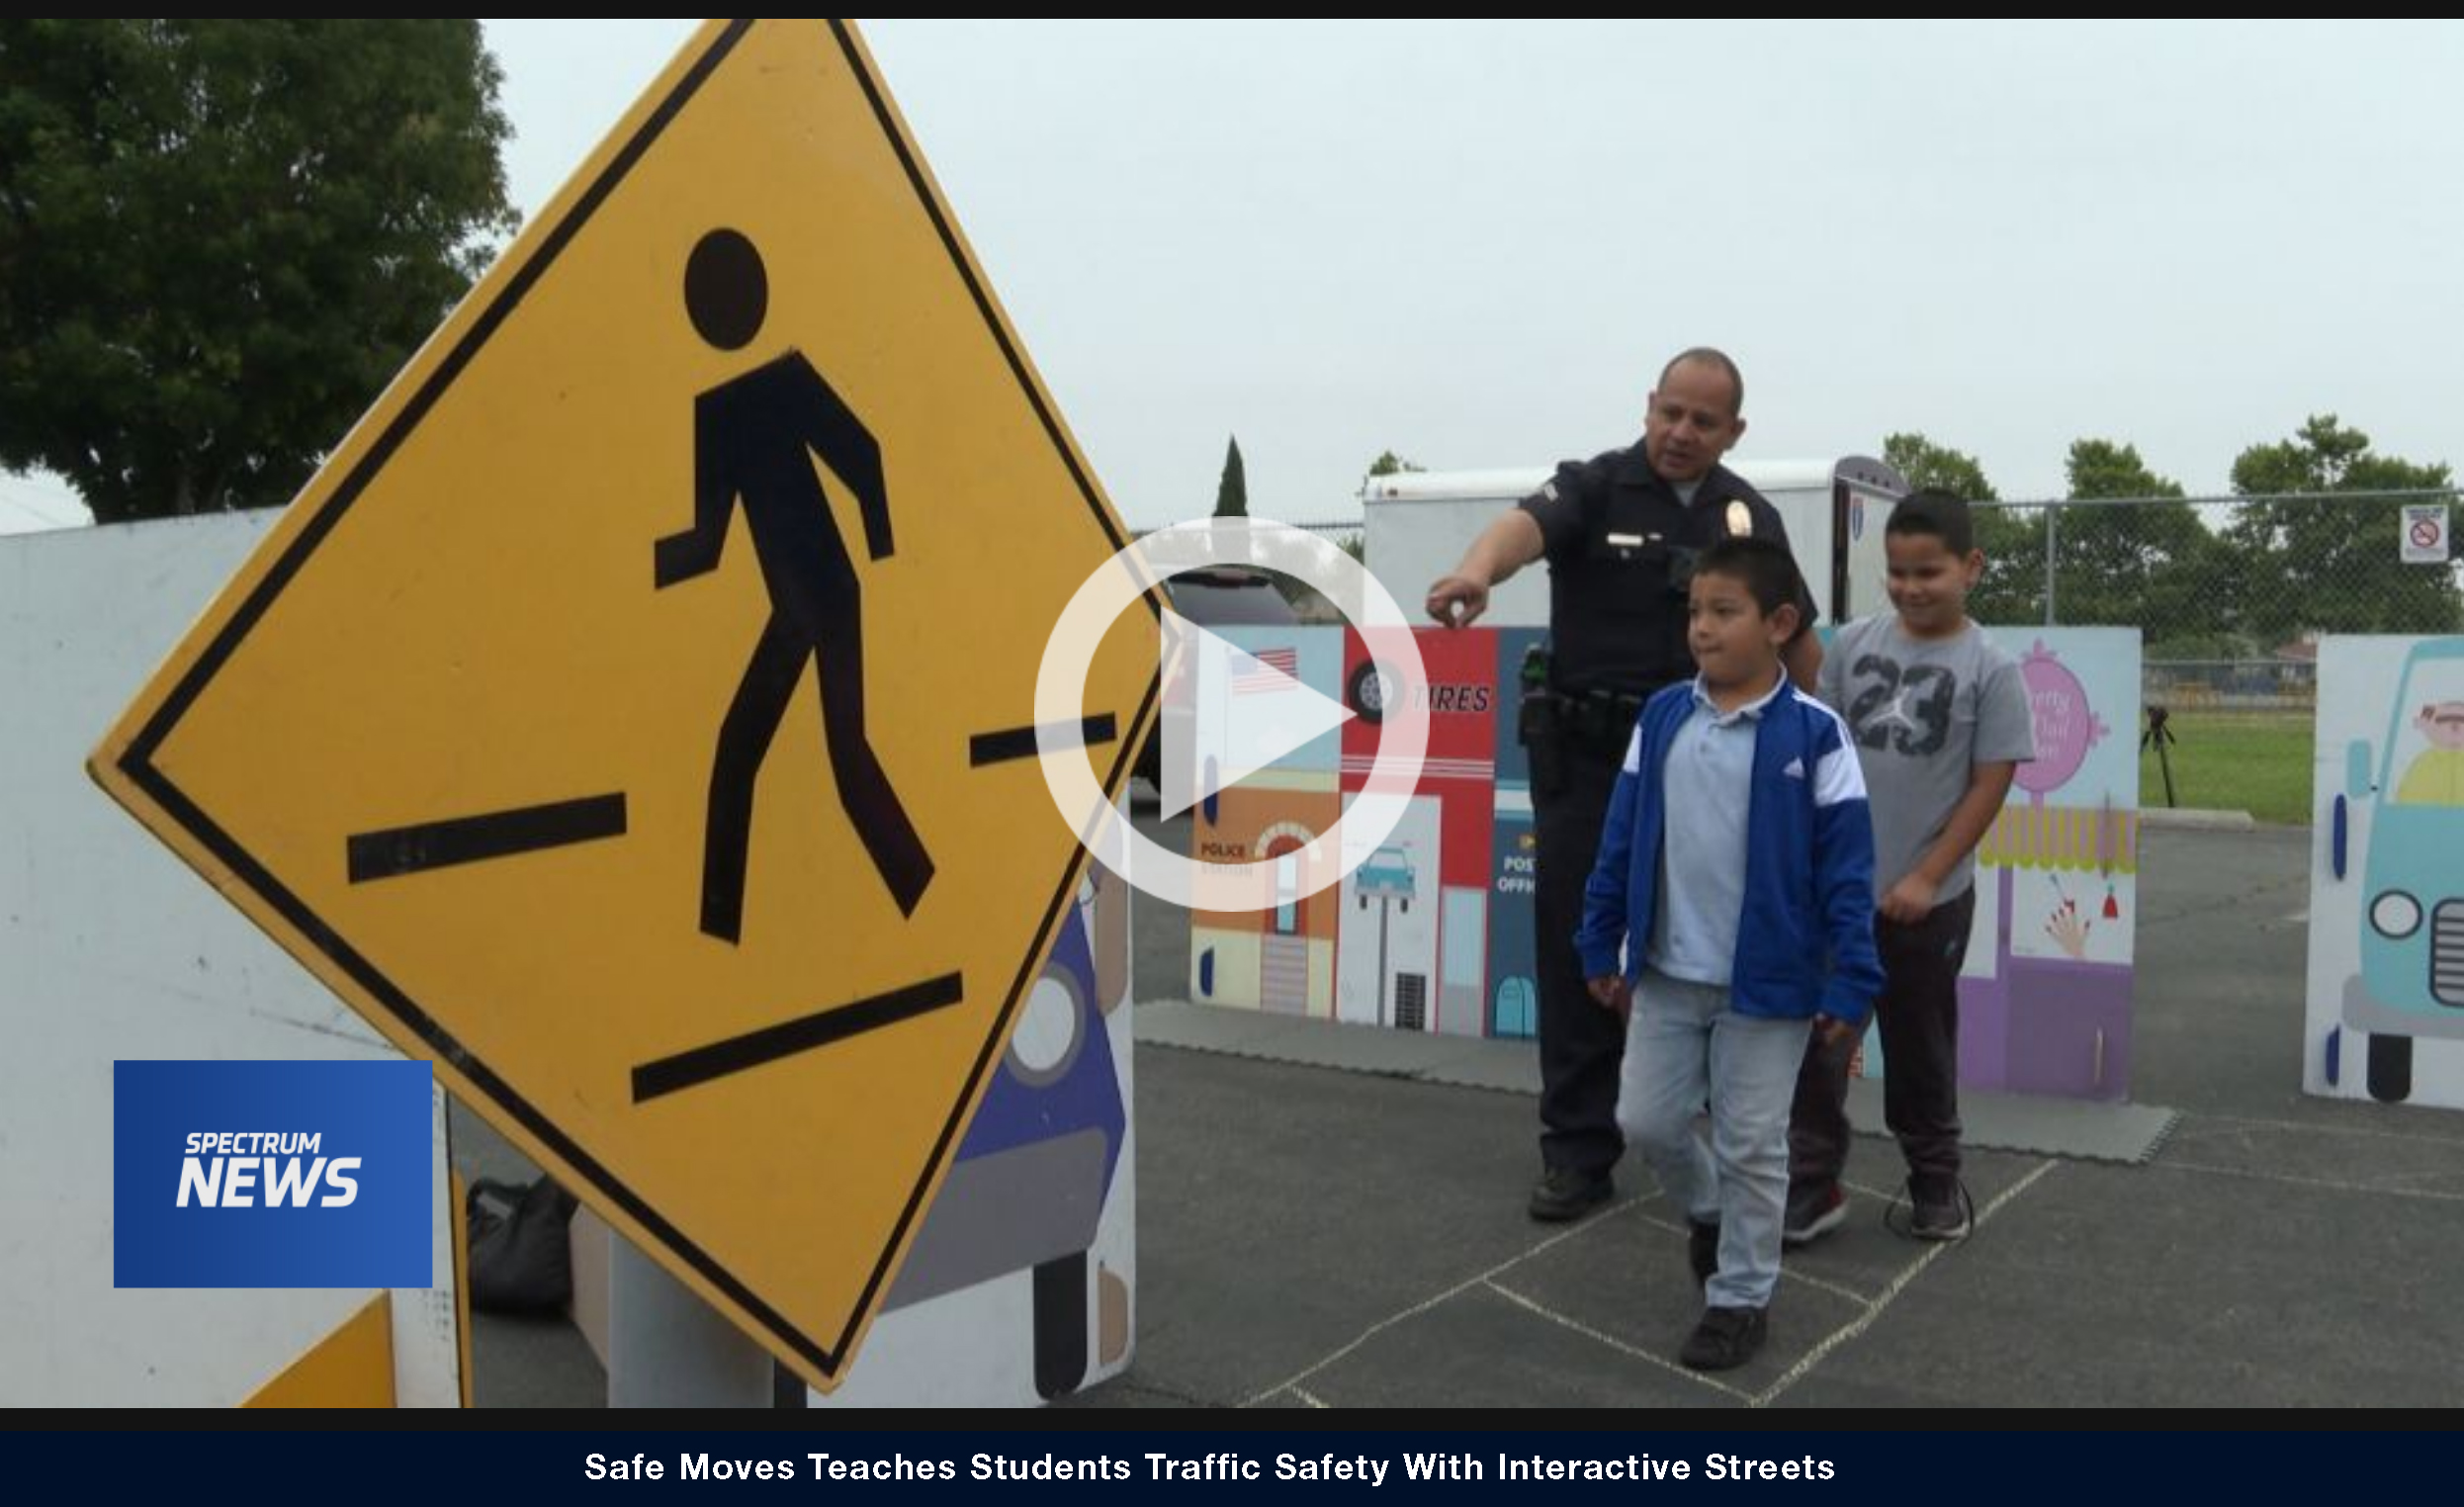 Safe Moves Teaches Students Traffic Safety With Interactive Streets